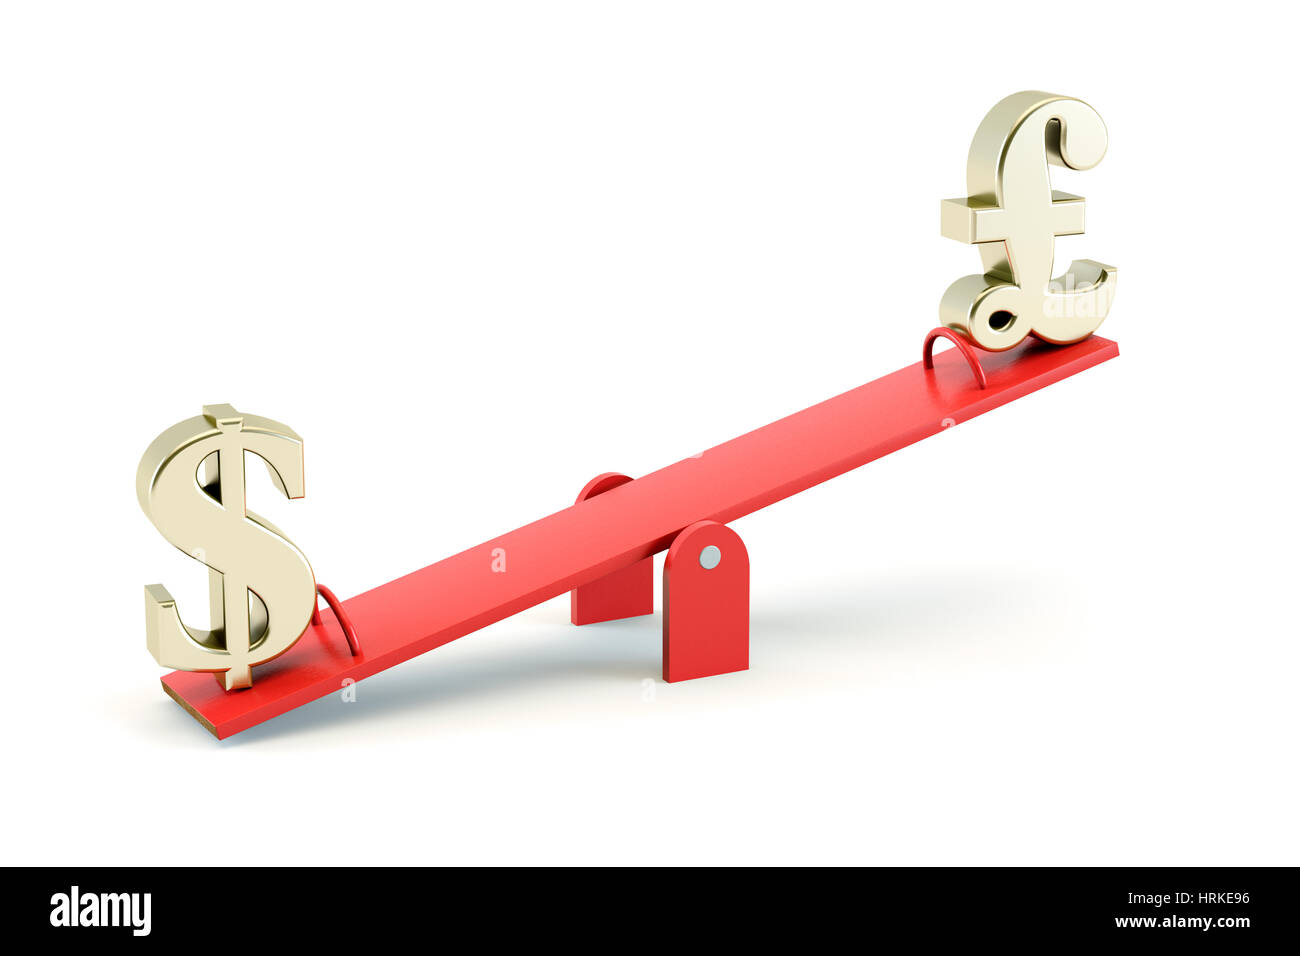 Gold US Dollar symbol and gold British GBP Pound Sterling on a Seesaw isolated on a white background - exchange - Stock Image